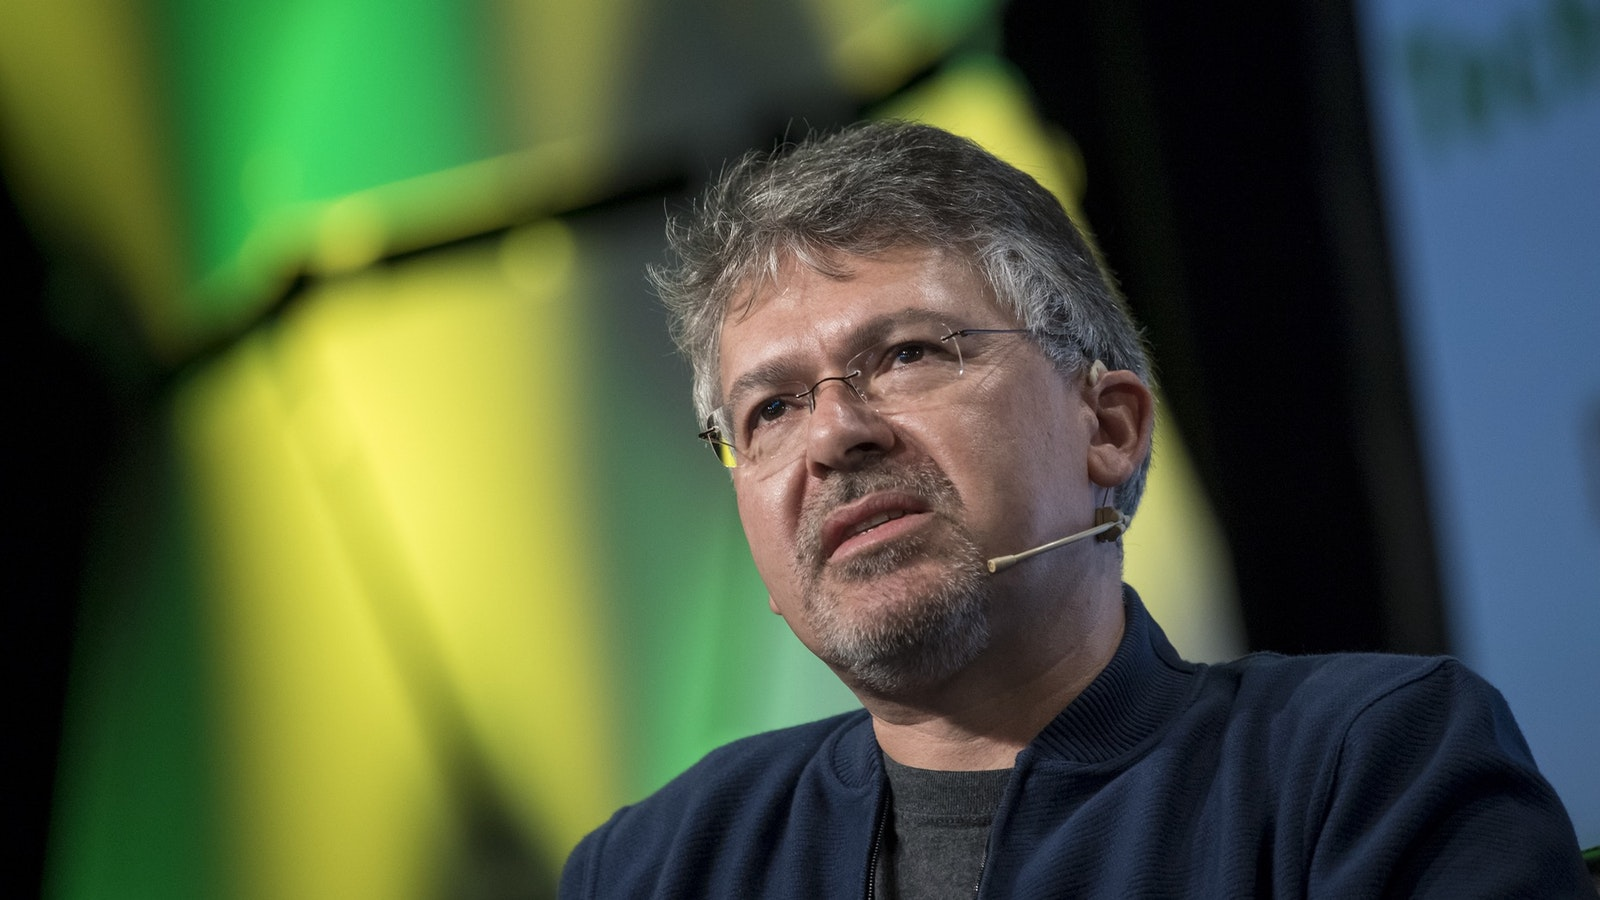 Google's John Giannandrea. Photo: Bloomberg